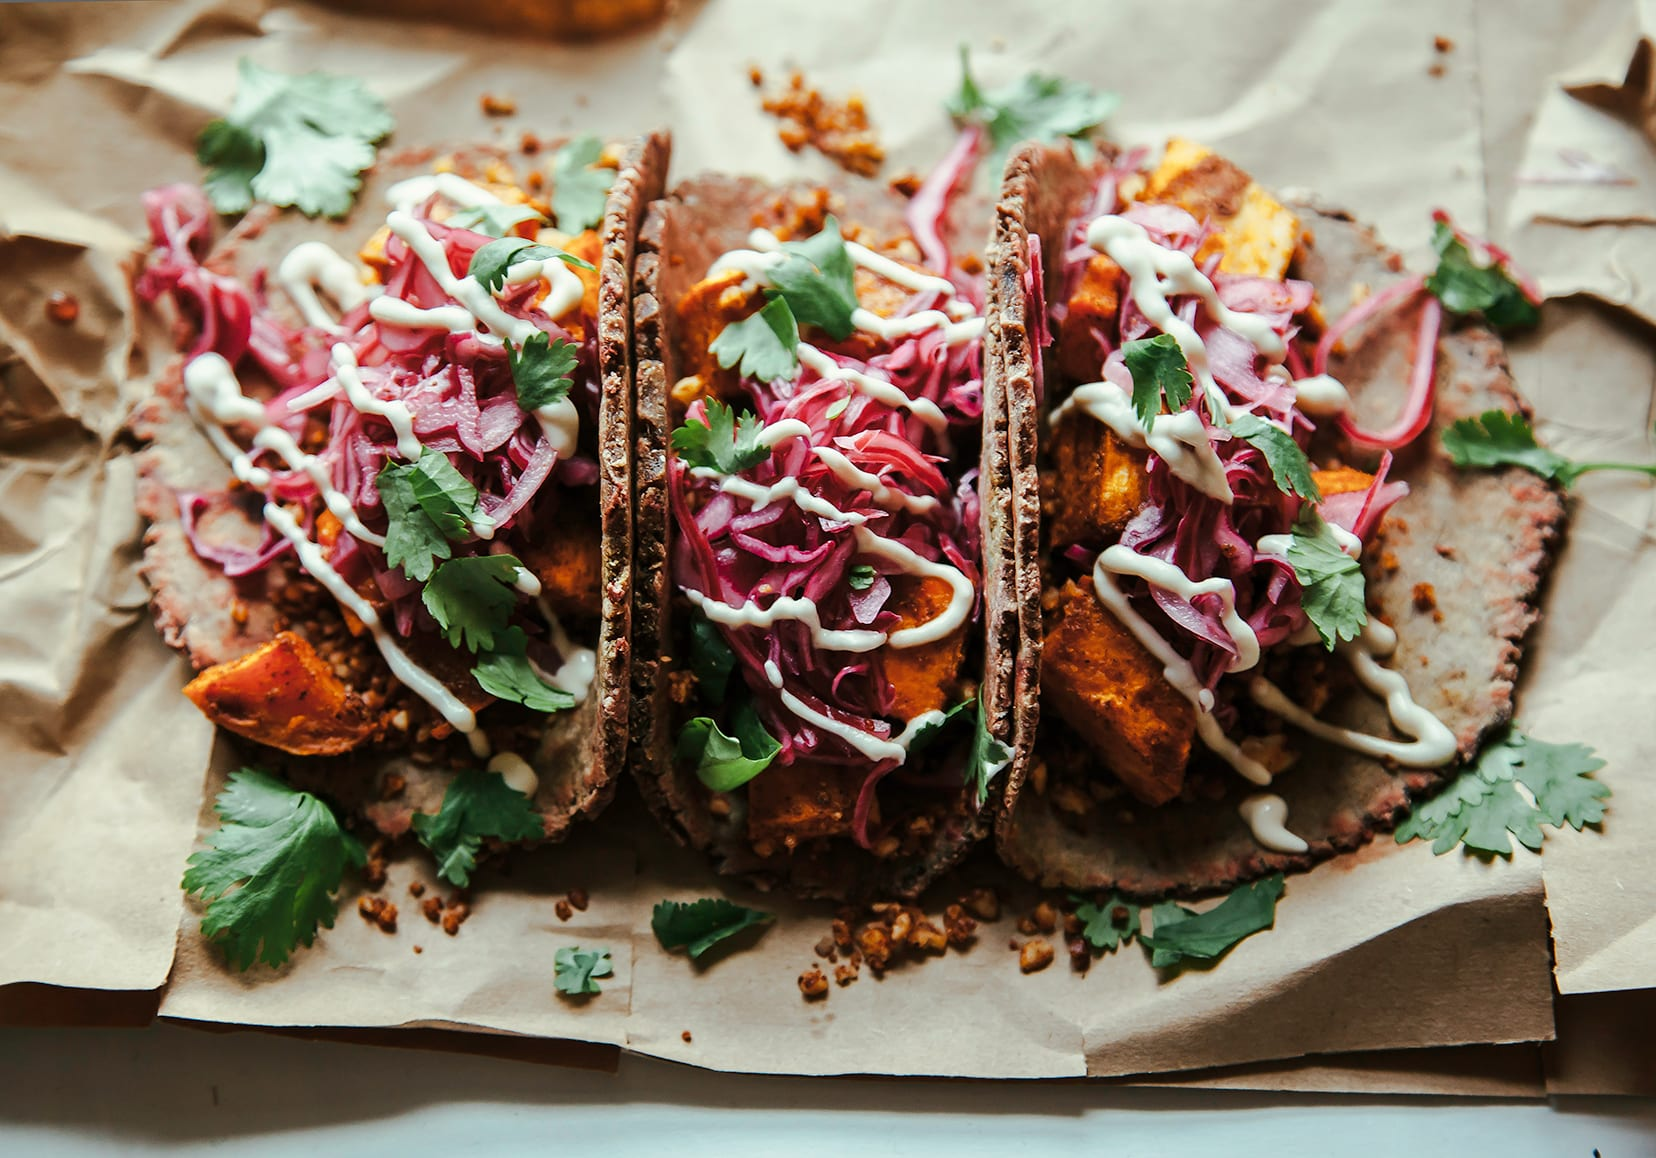 A 3/4 angle shot of 3 sweet potato tacos drizzled with a creamy white sauce and topped with chopped cilantro.